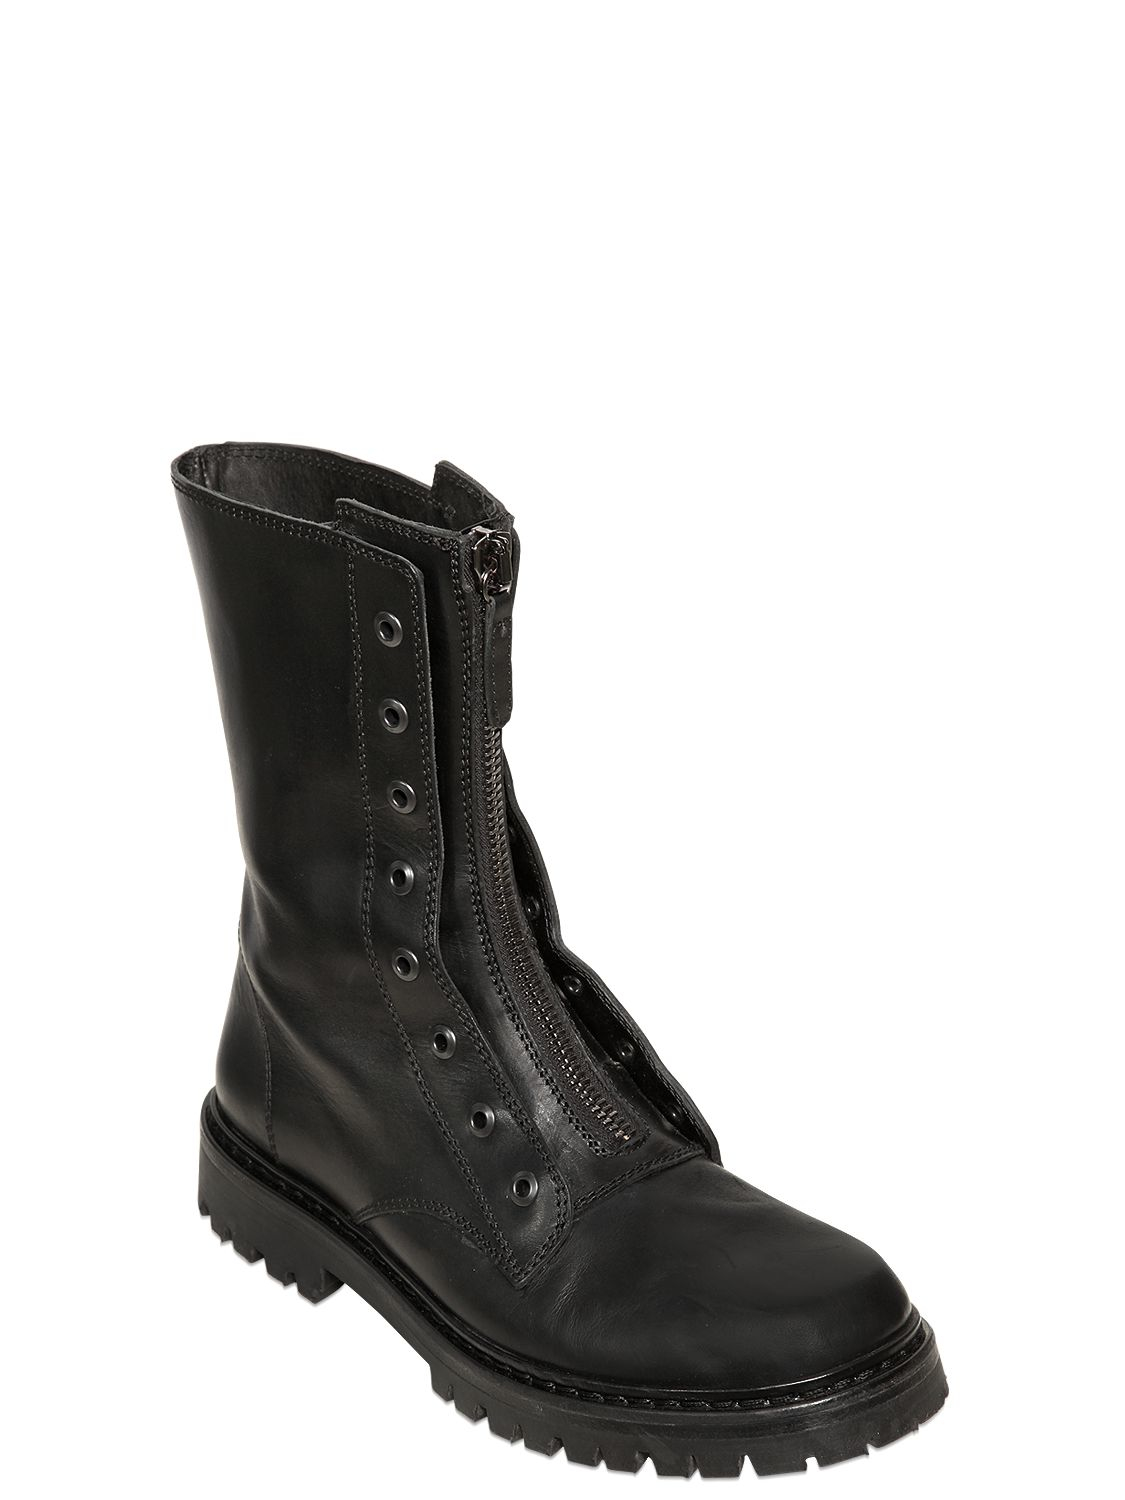 Lyst Diesel Black Gold Zip Smooth Leather Boots In Black